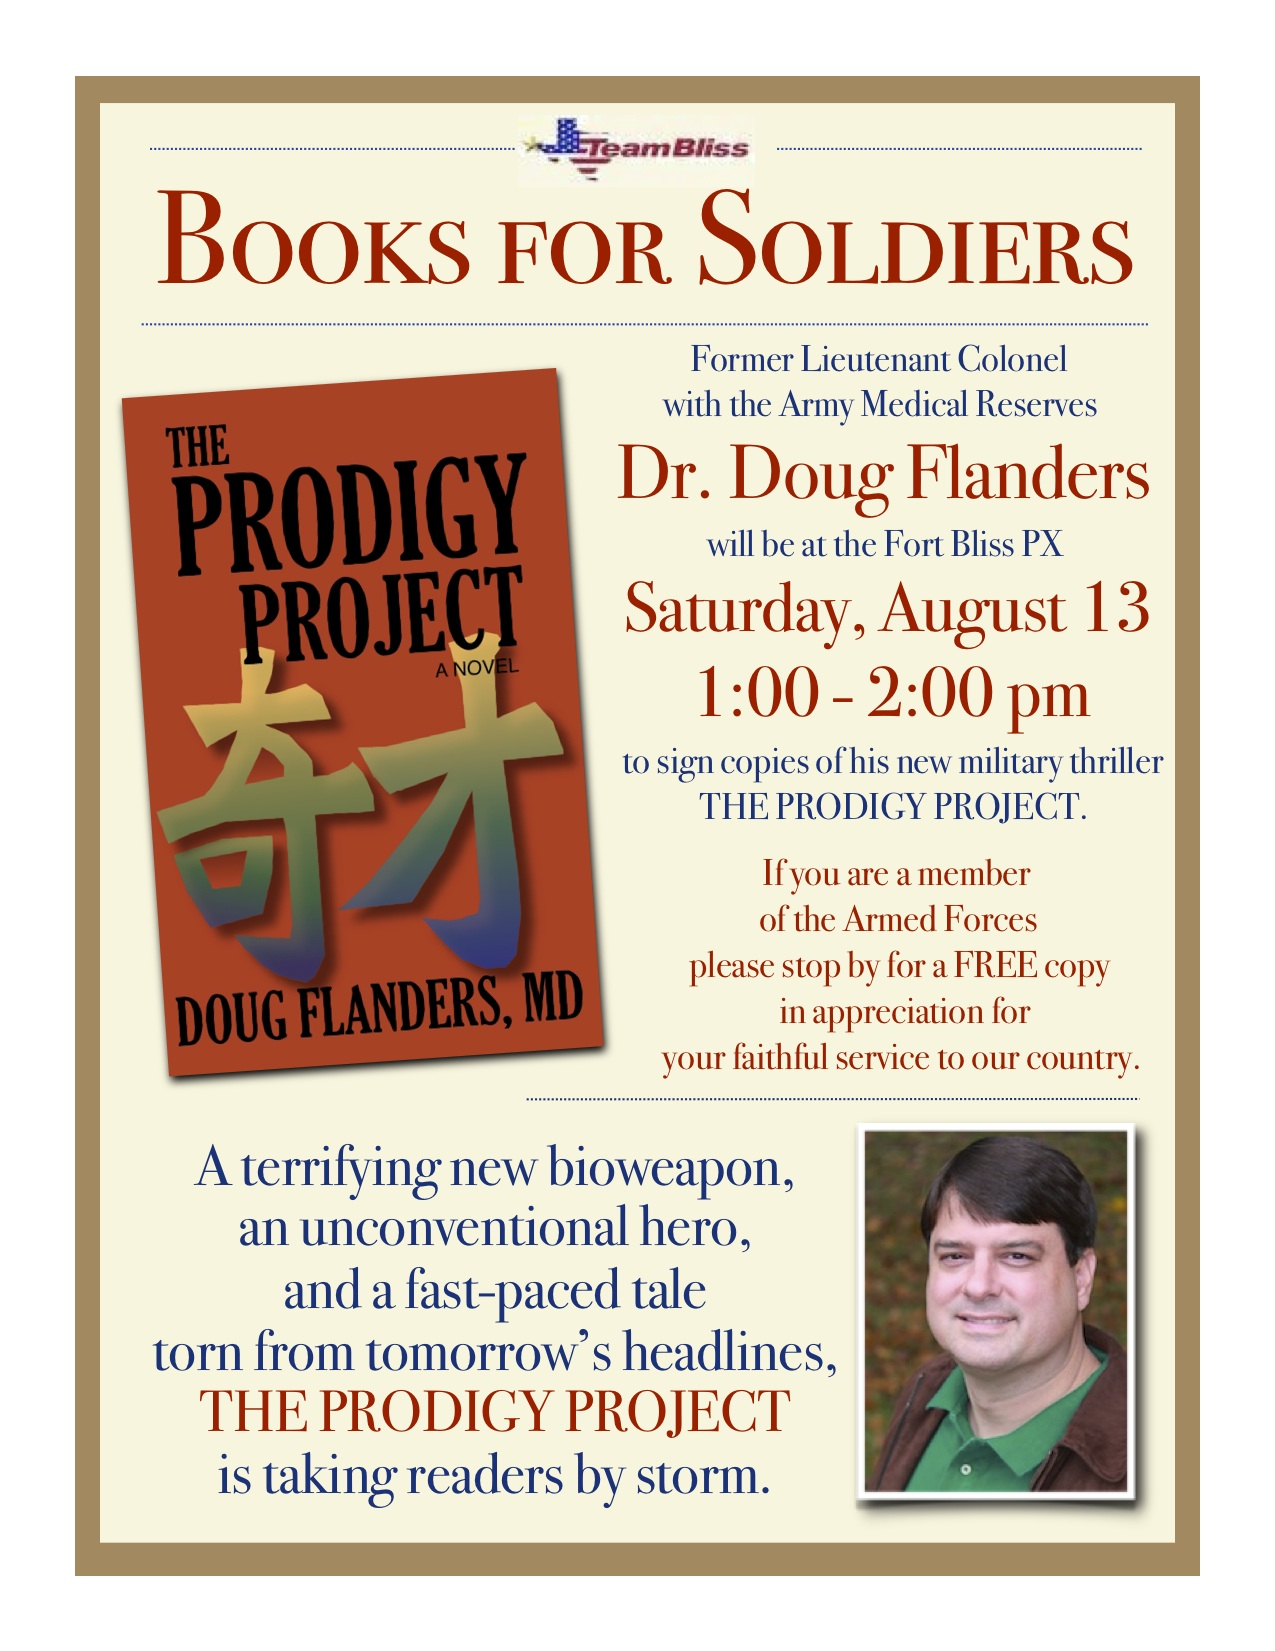 Doug Flanders Returns to Fort Bliss